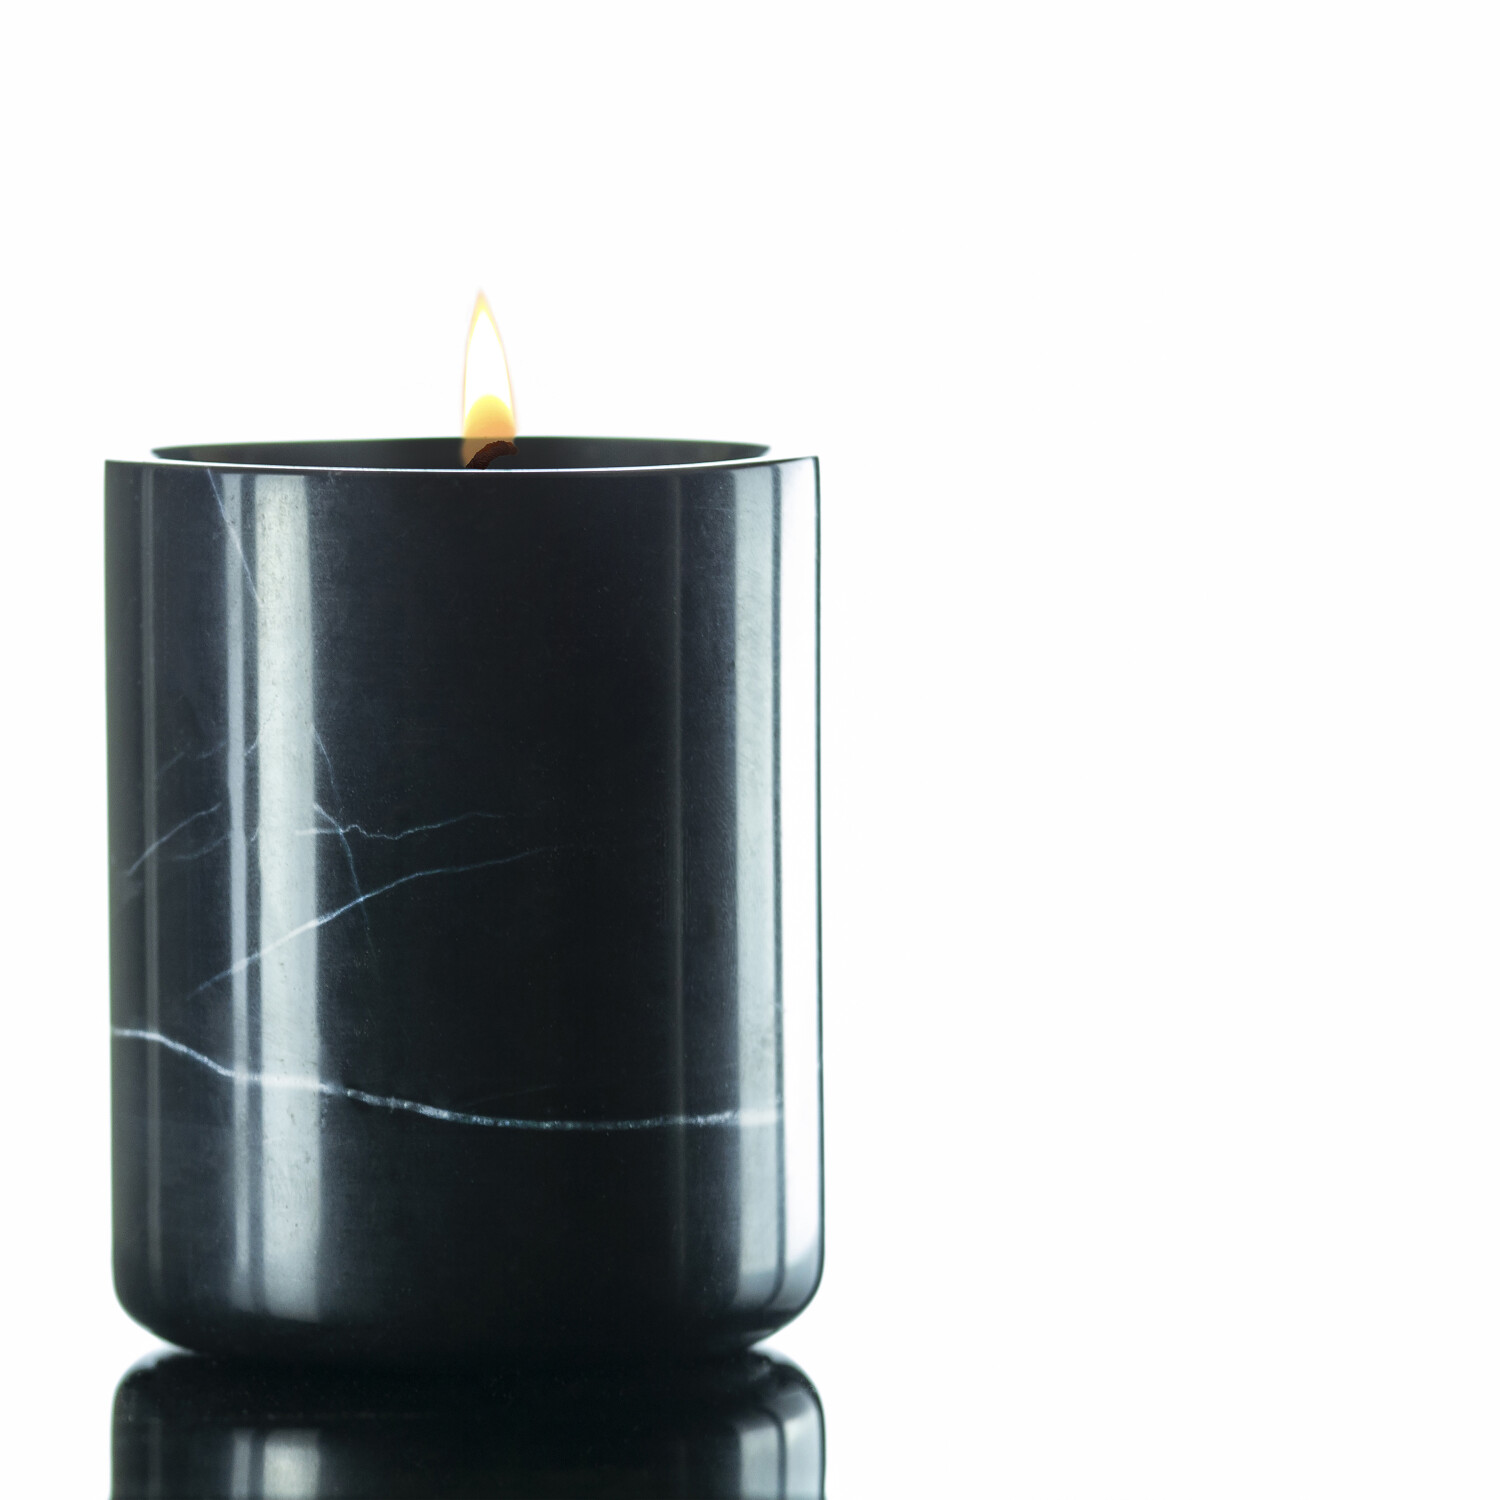 Soy Candles in 6 Scents in White or Black Marble by Willow Lane Home - Jasmine Orange Blossom In Black/Grey Marble